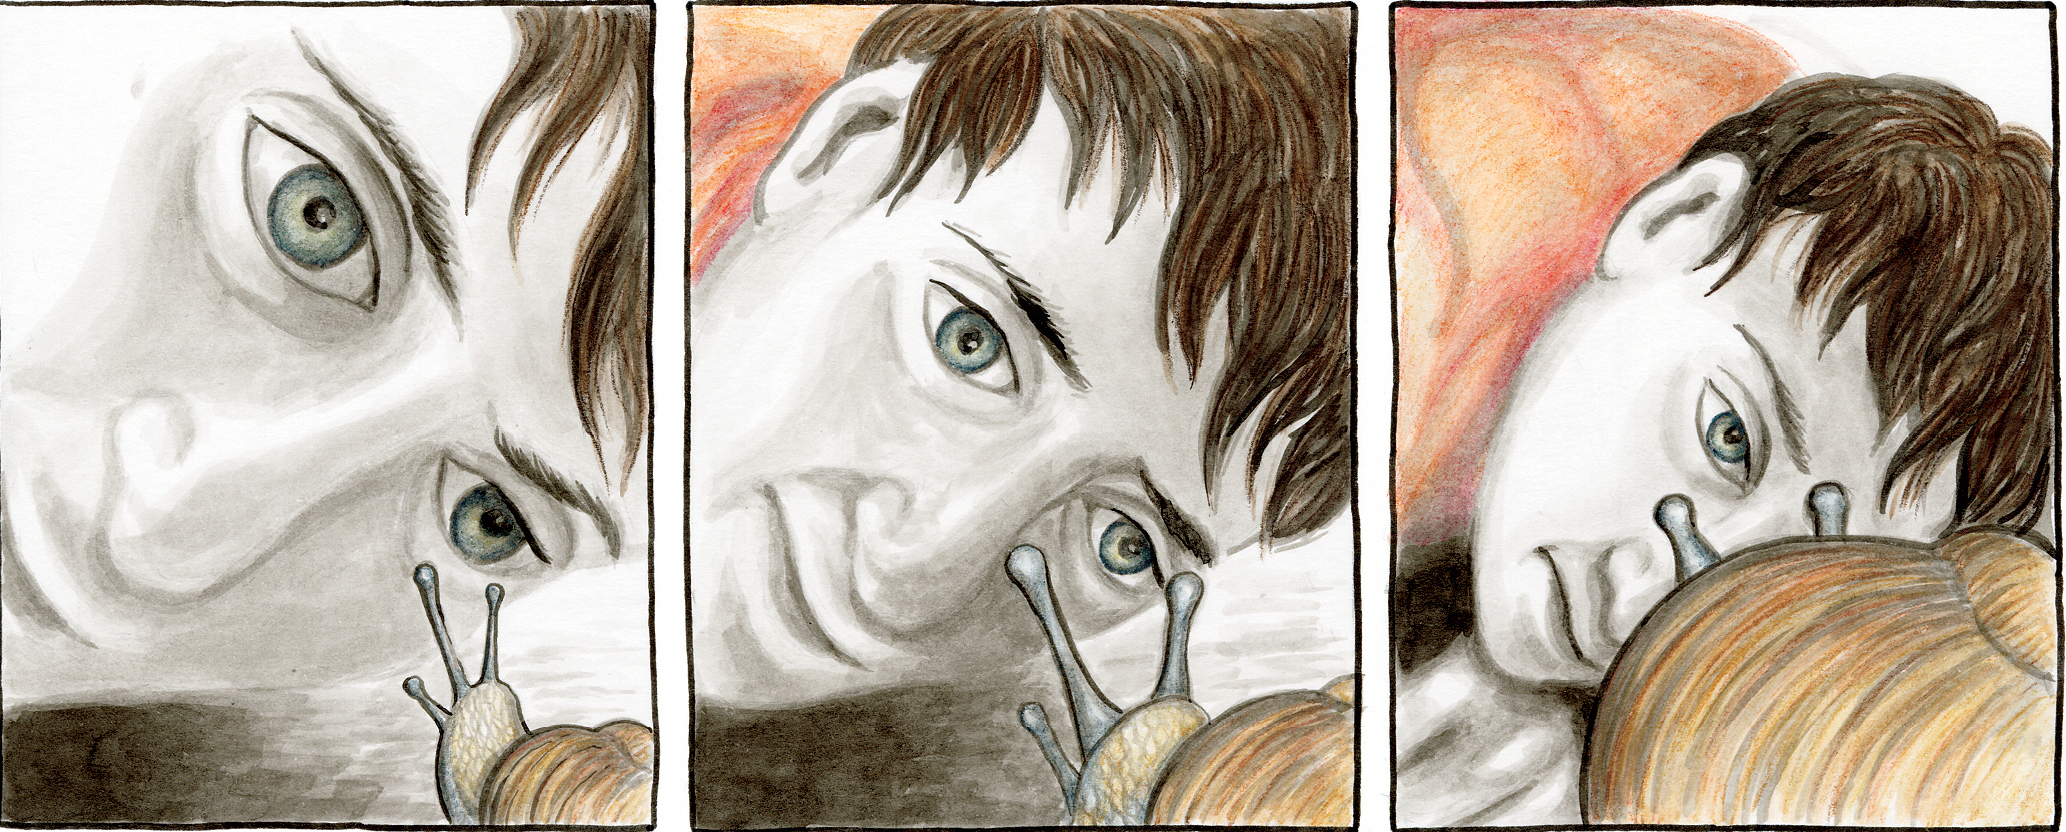 Detail of art by Maureen Burdock, cultural studies student graphic novel image of woman's face with snail, three panels